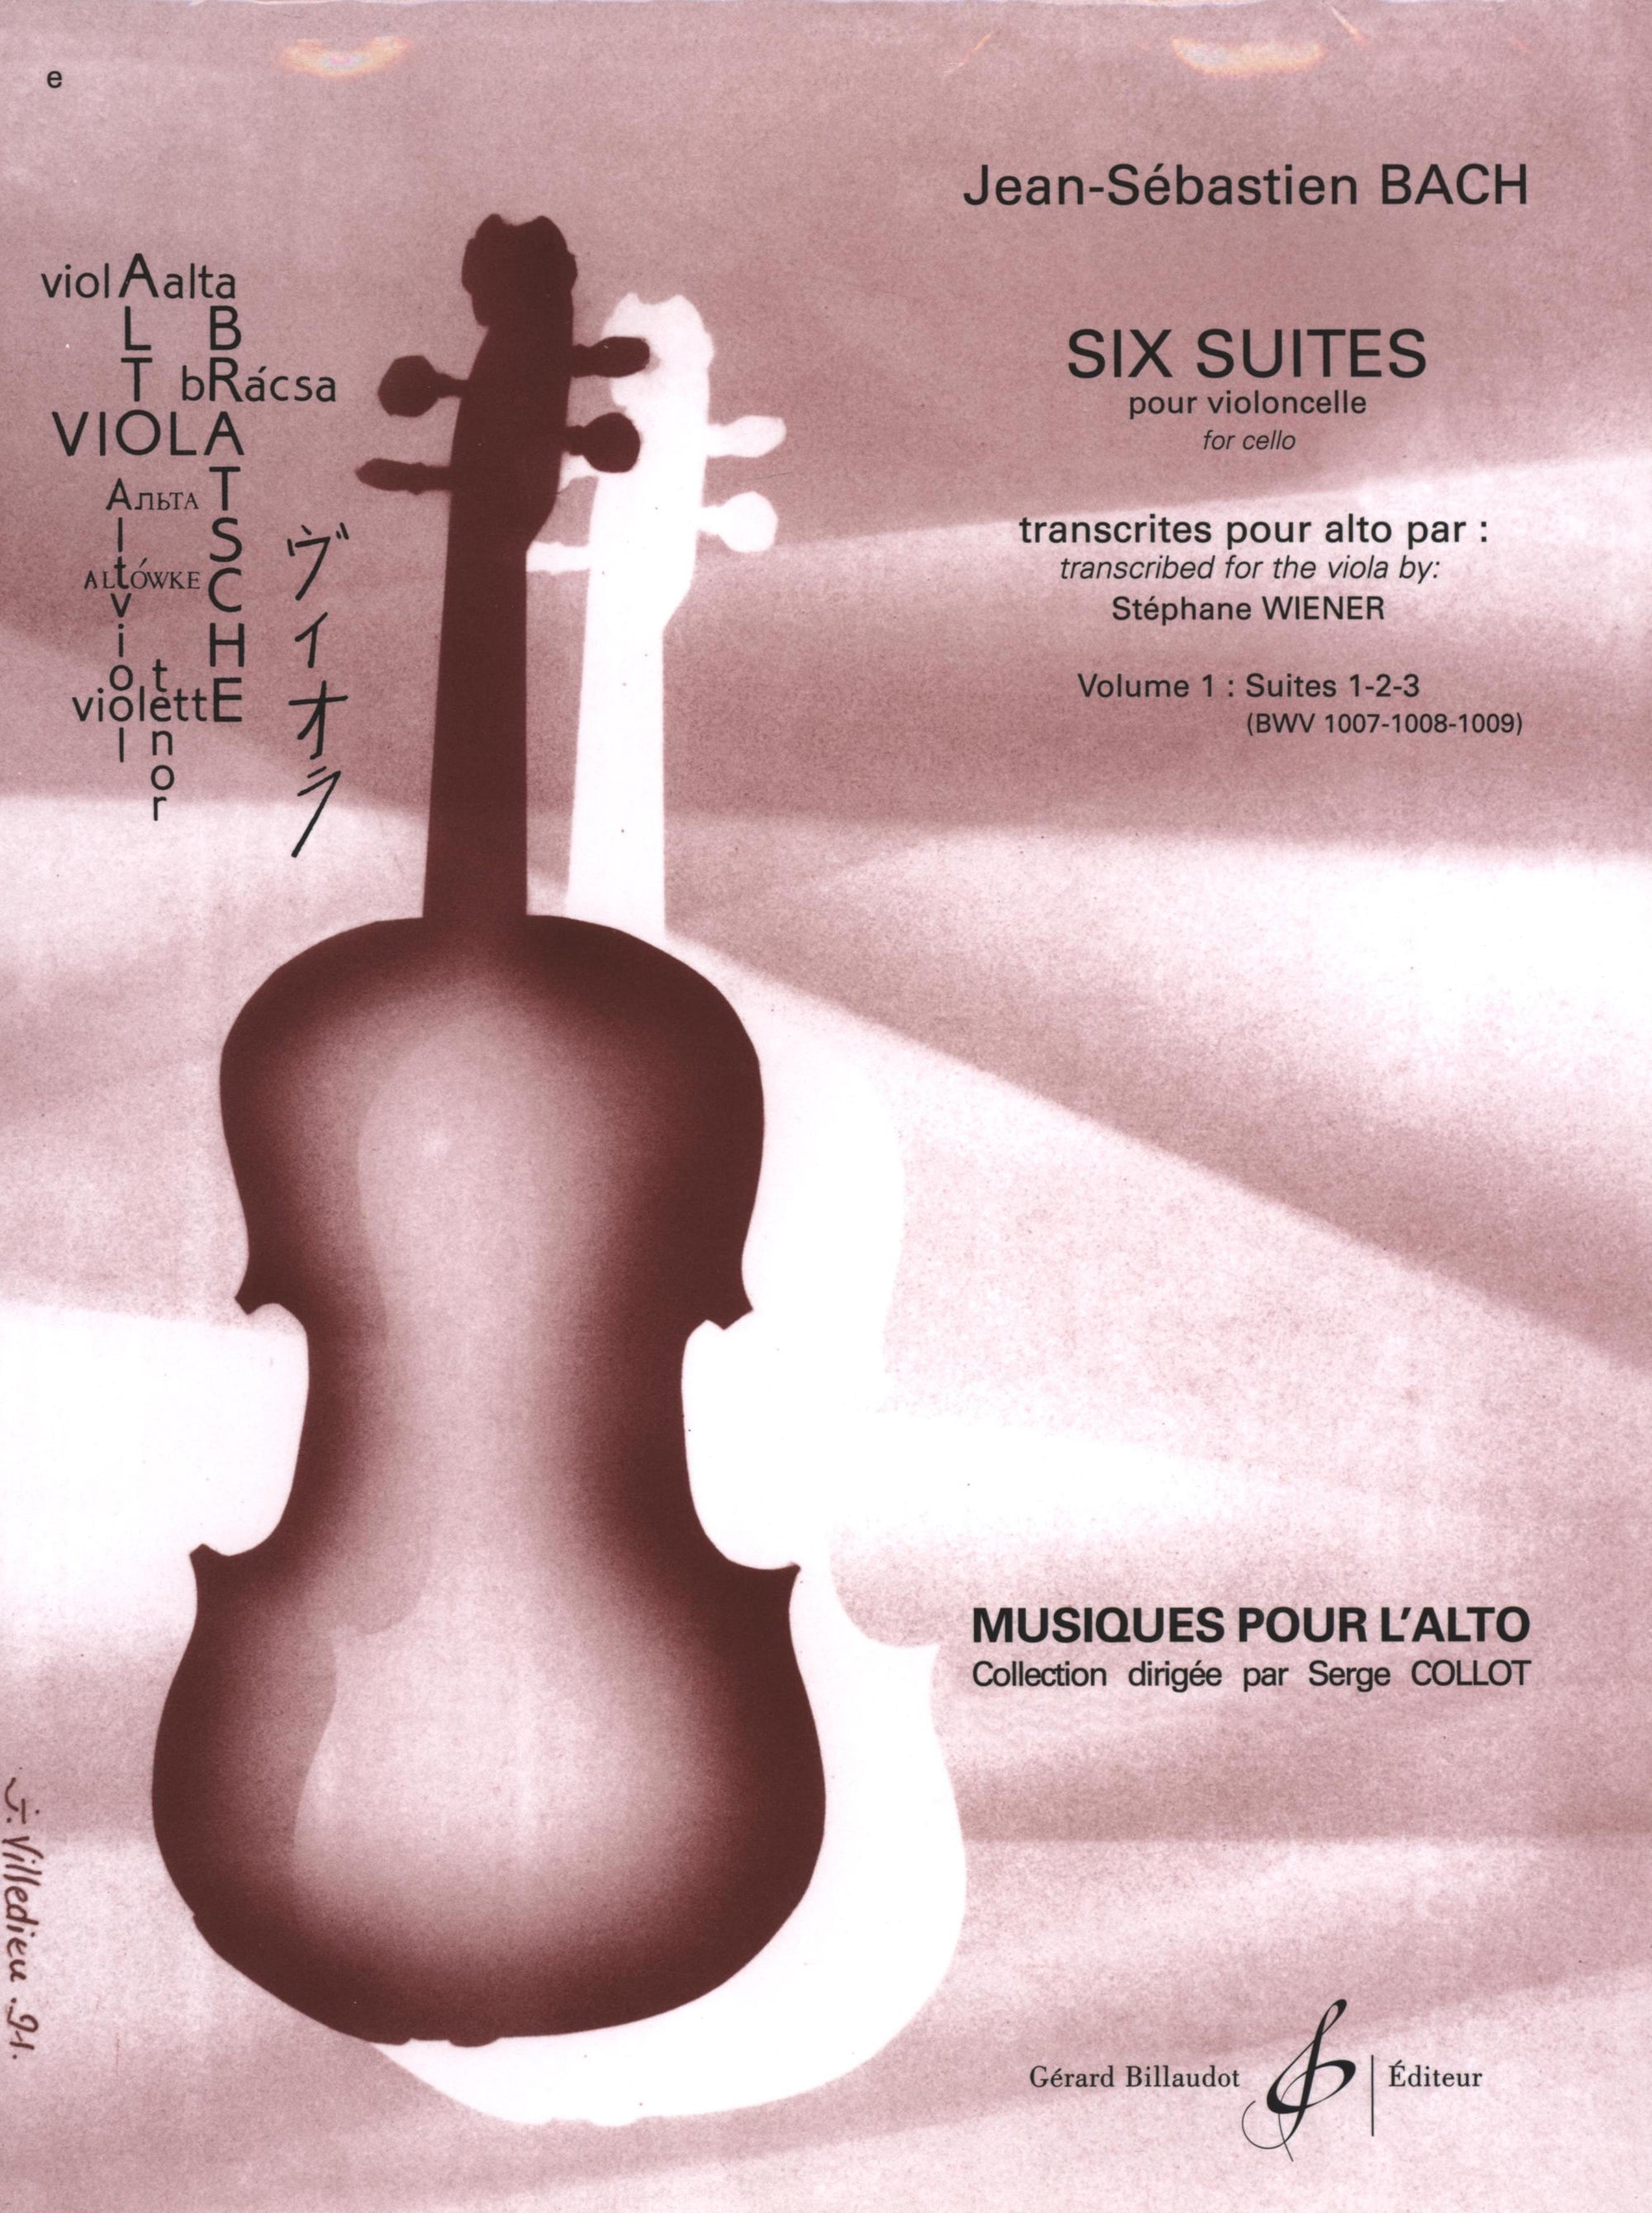 Bach: 6 Cello Suites Transcribed for Viola - Volume 1 (Nos. 1-3)